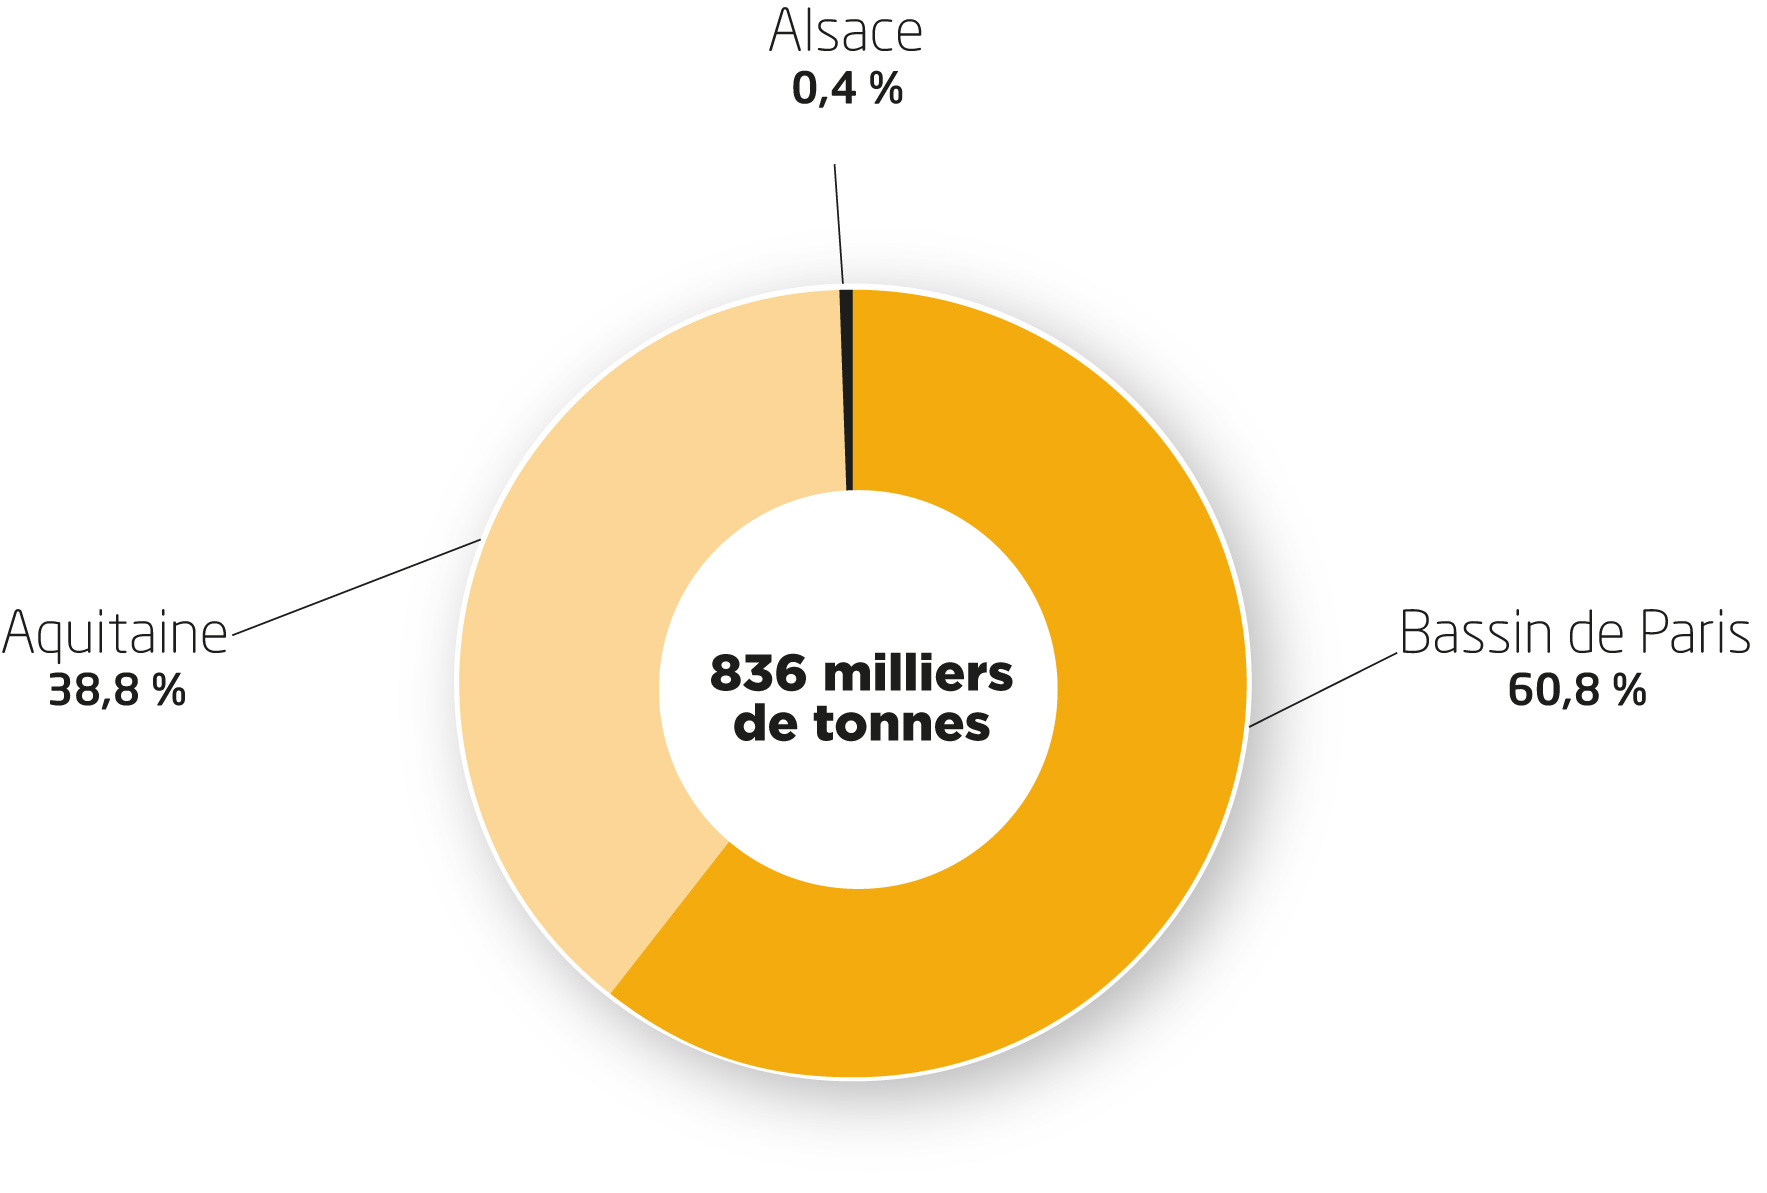 Répartition 2017 par bassin de production